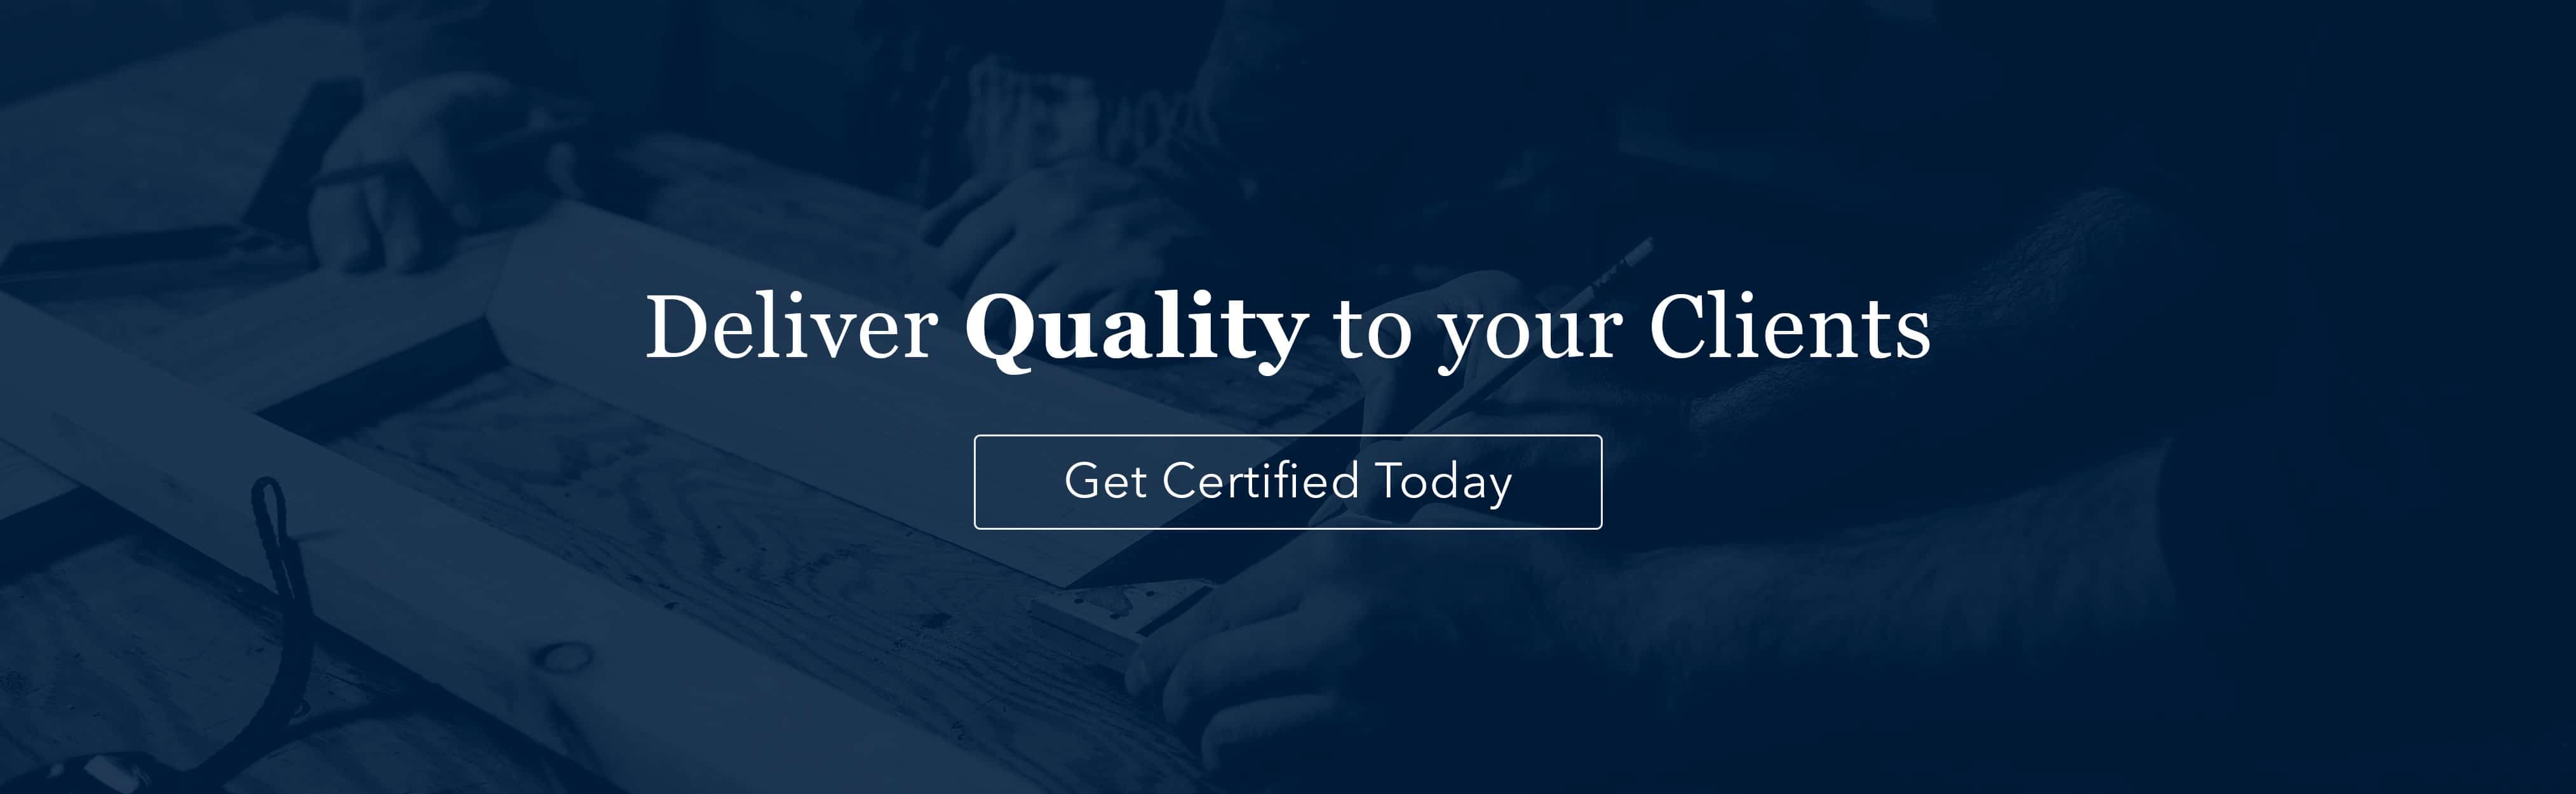 awi-qcp-get-certified-today-cta